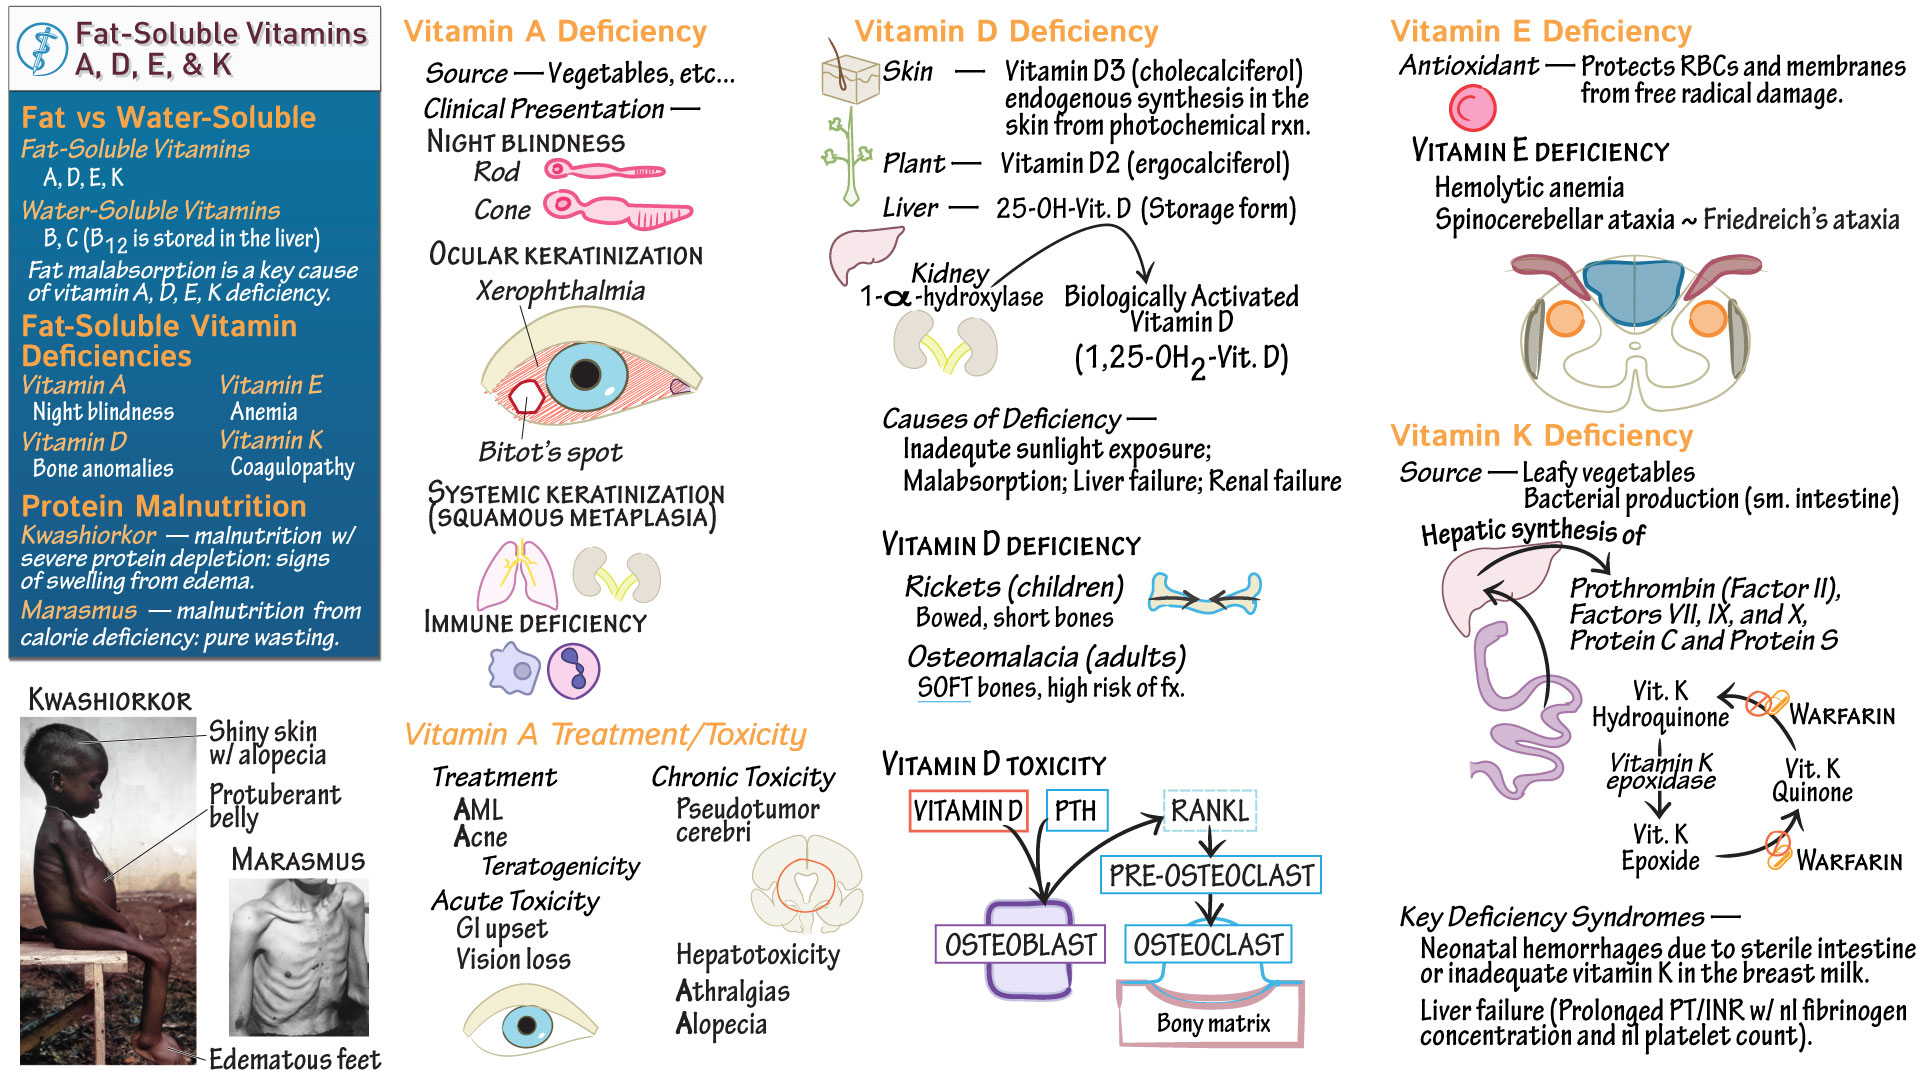 Biochemistry Disorders Of Fat Soluble Vitamins Amp Protein